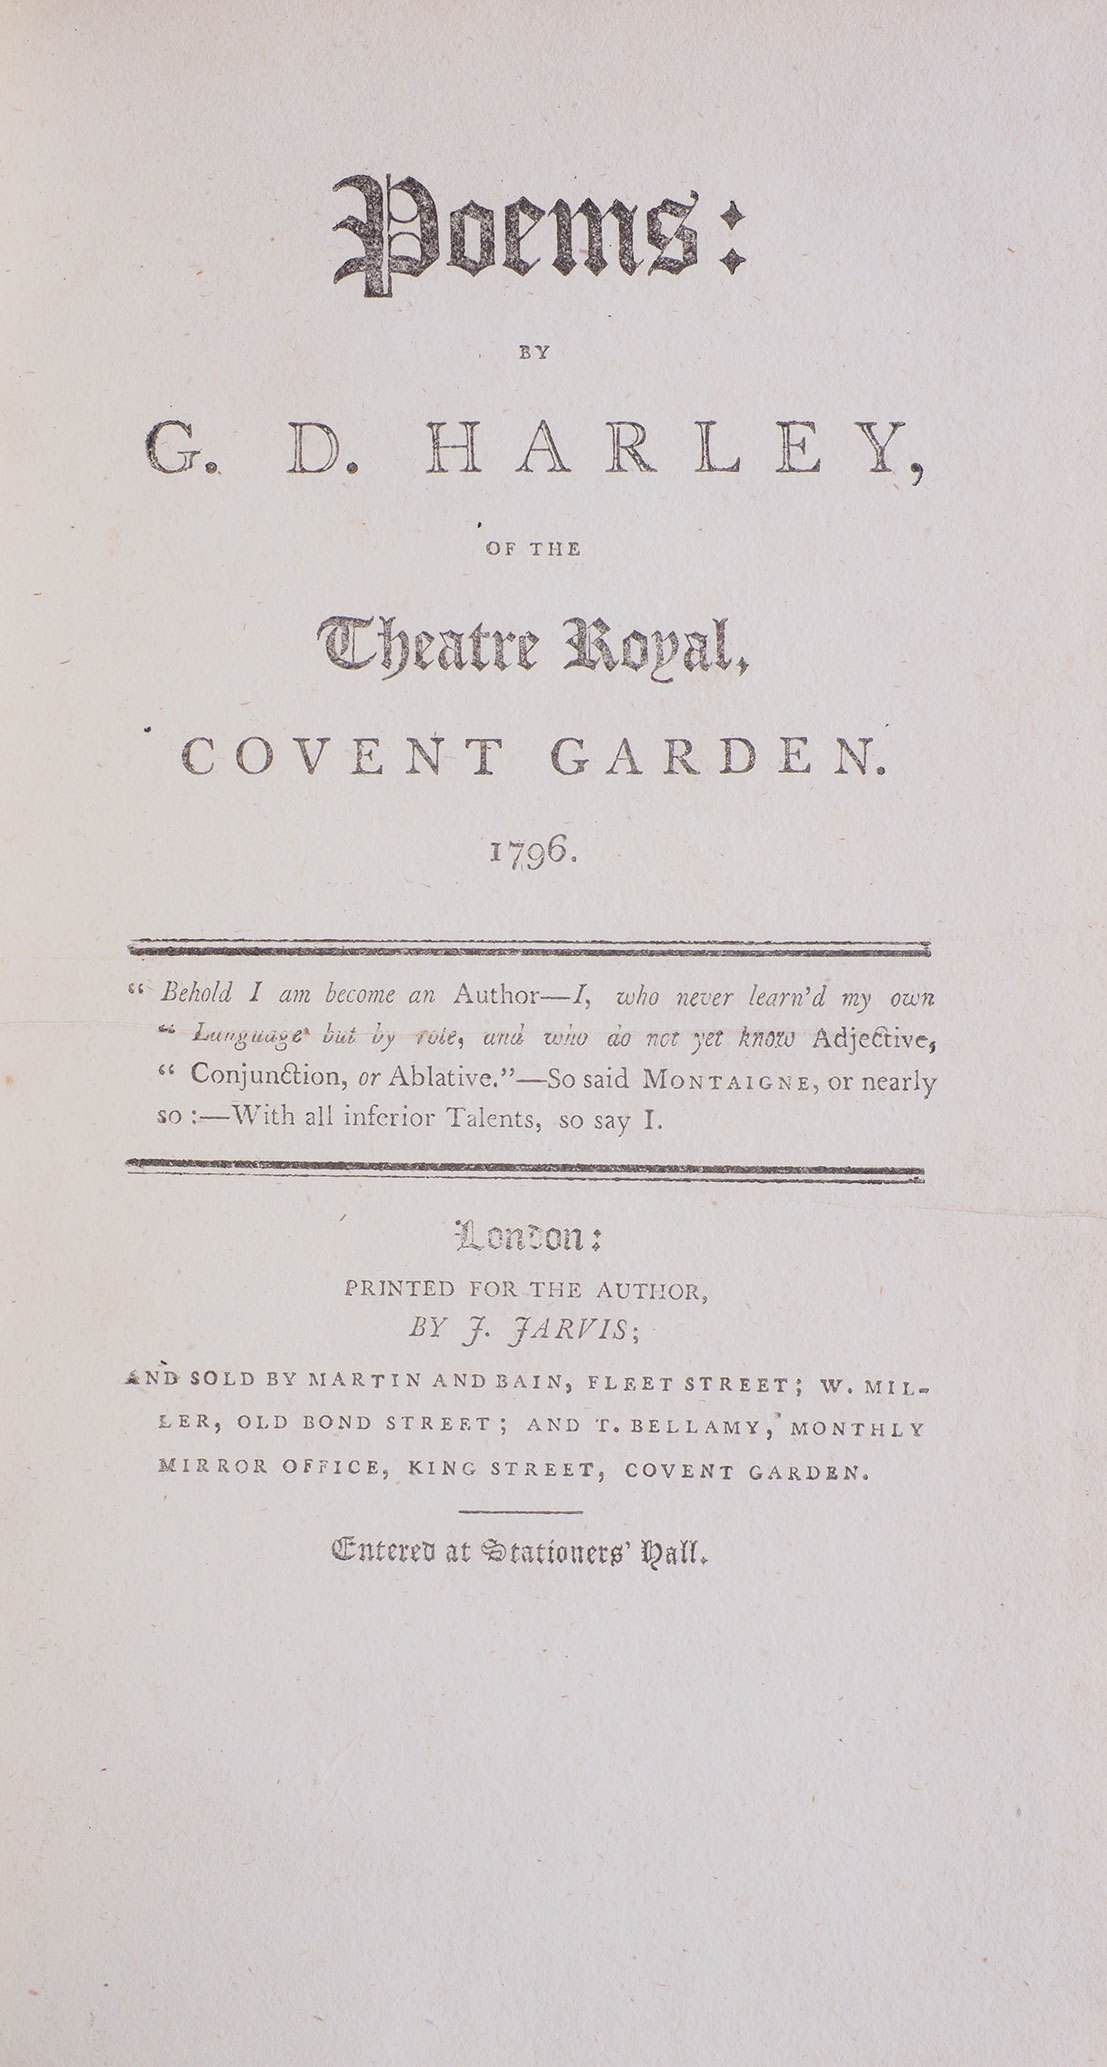 Poems: by G. D. Harley, of the Theatre Royal, Covent